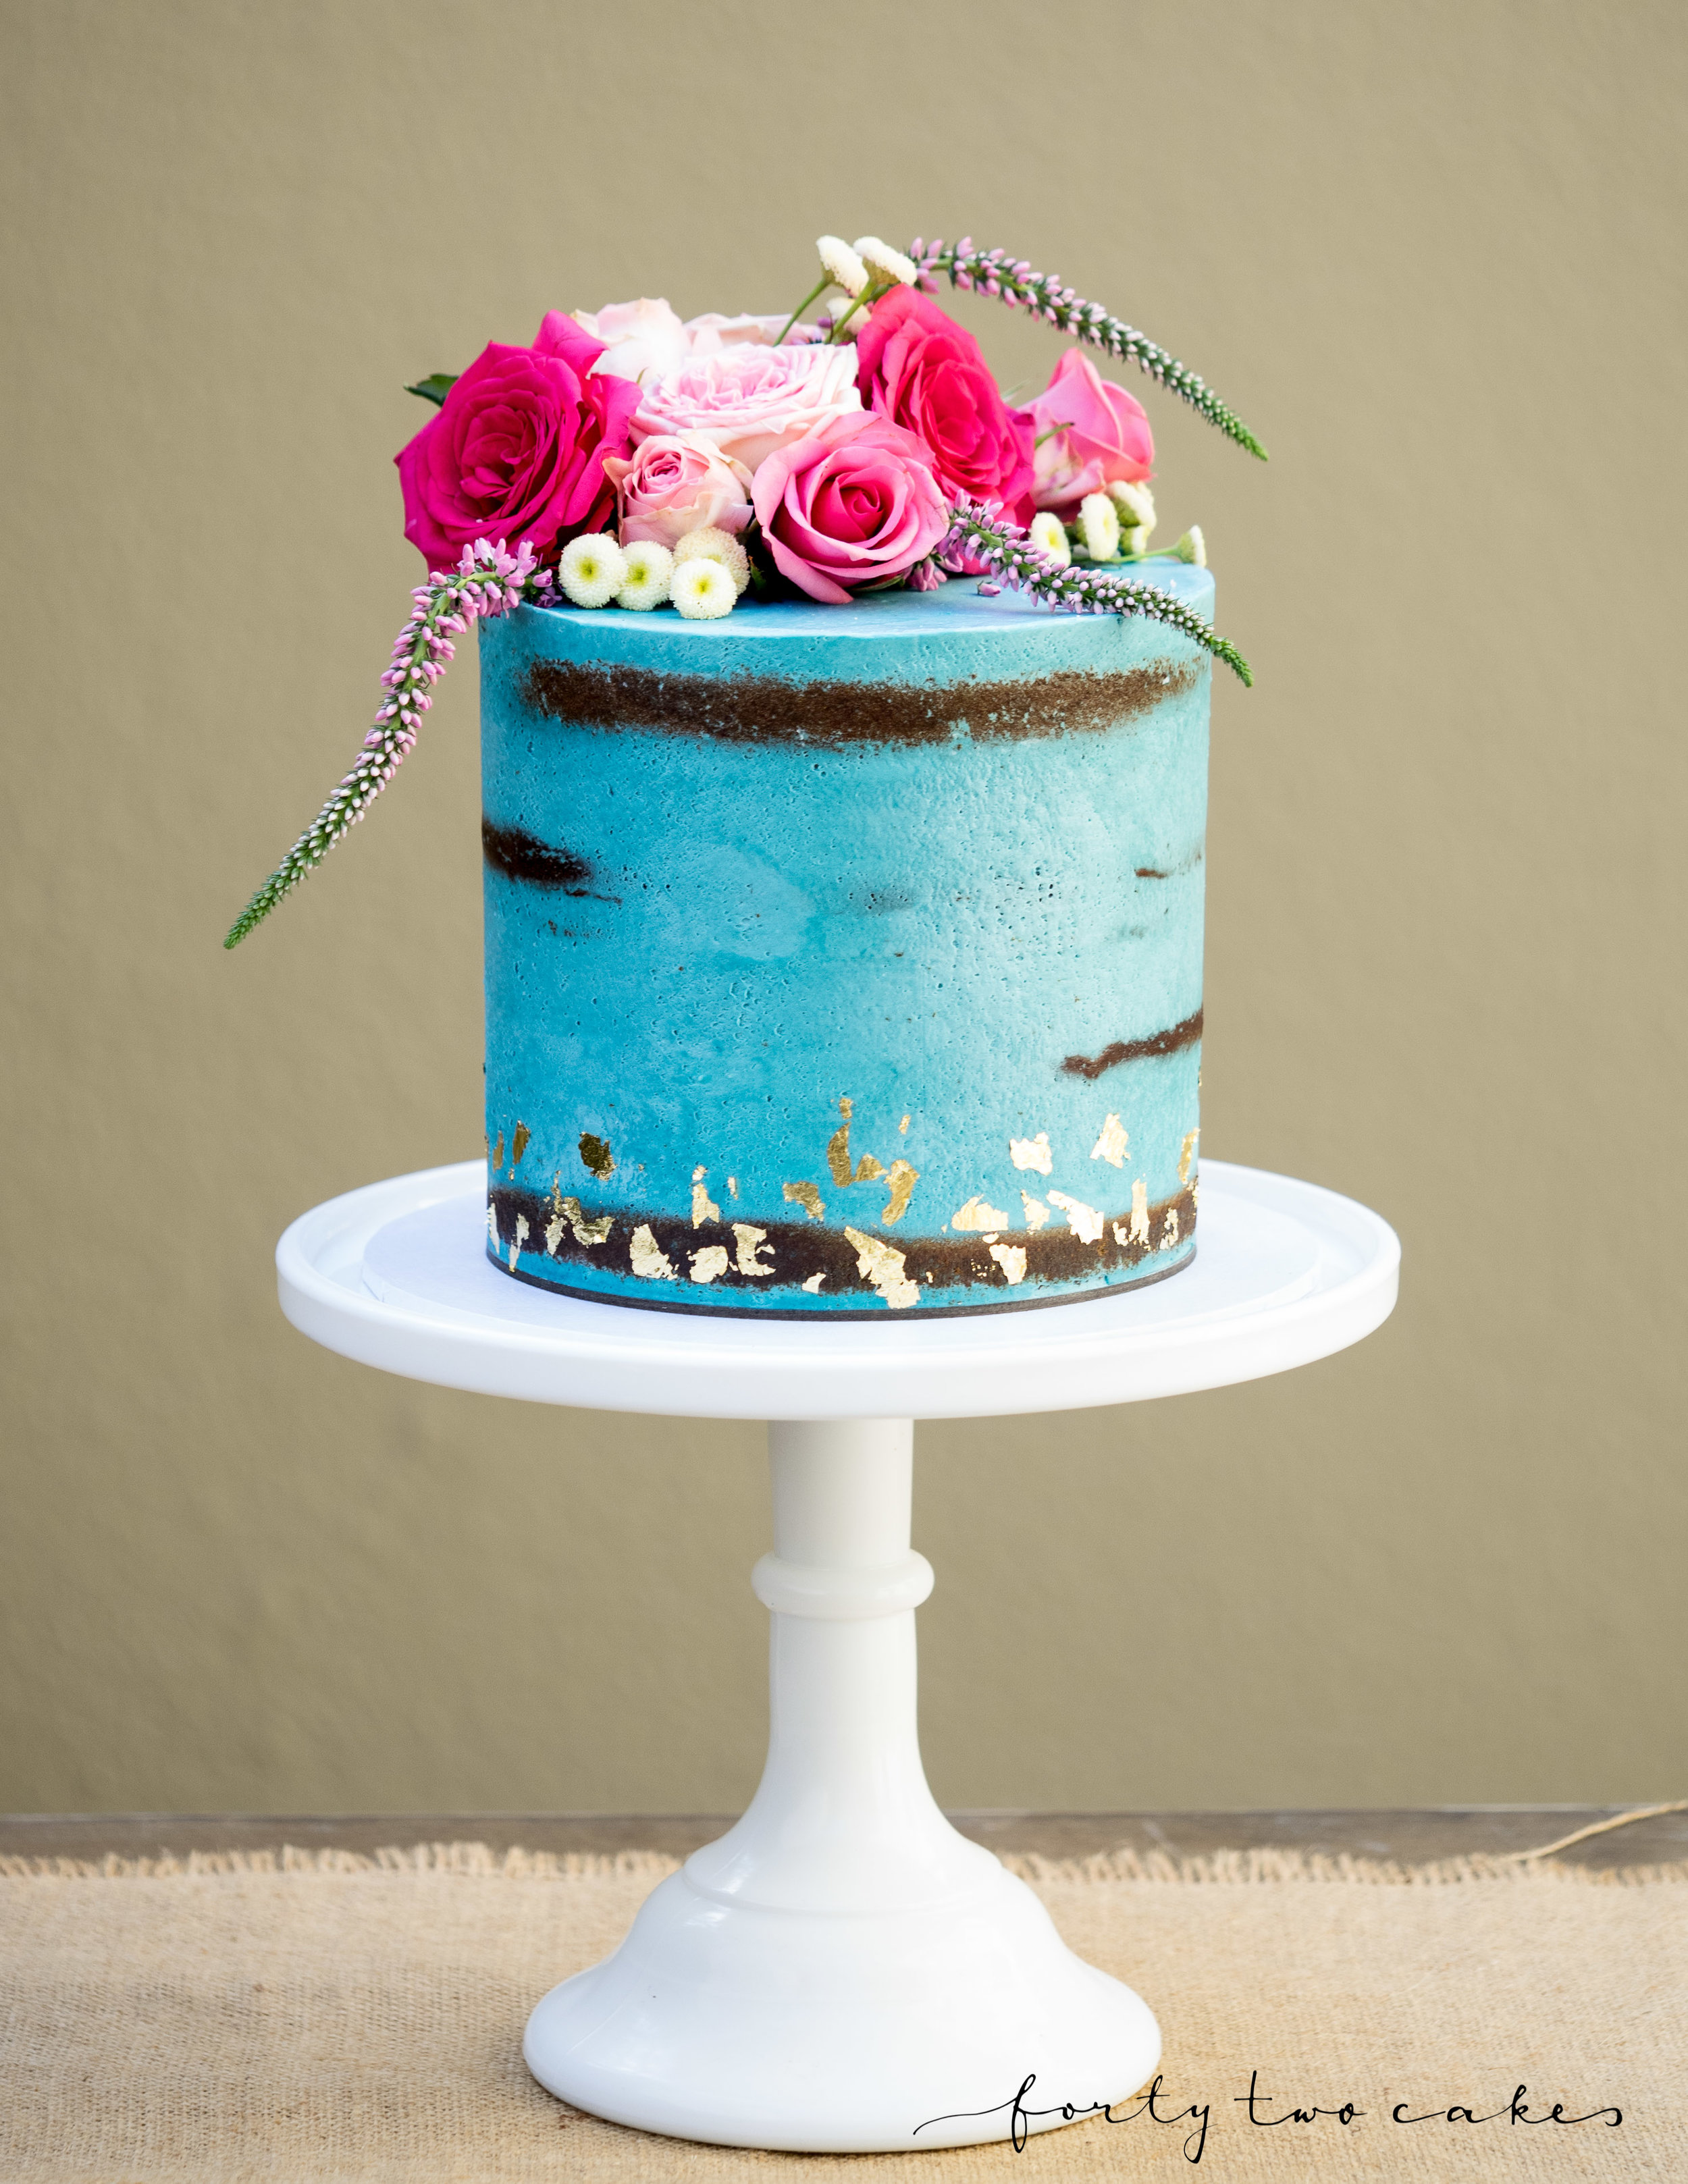 Forty-Two Cakes - Seminaked-23.jpg